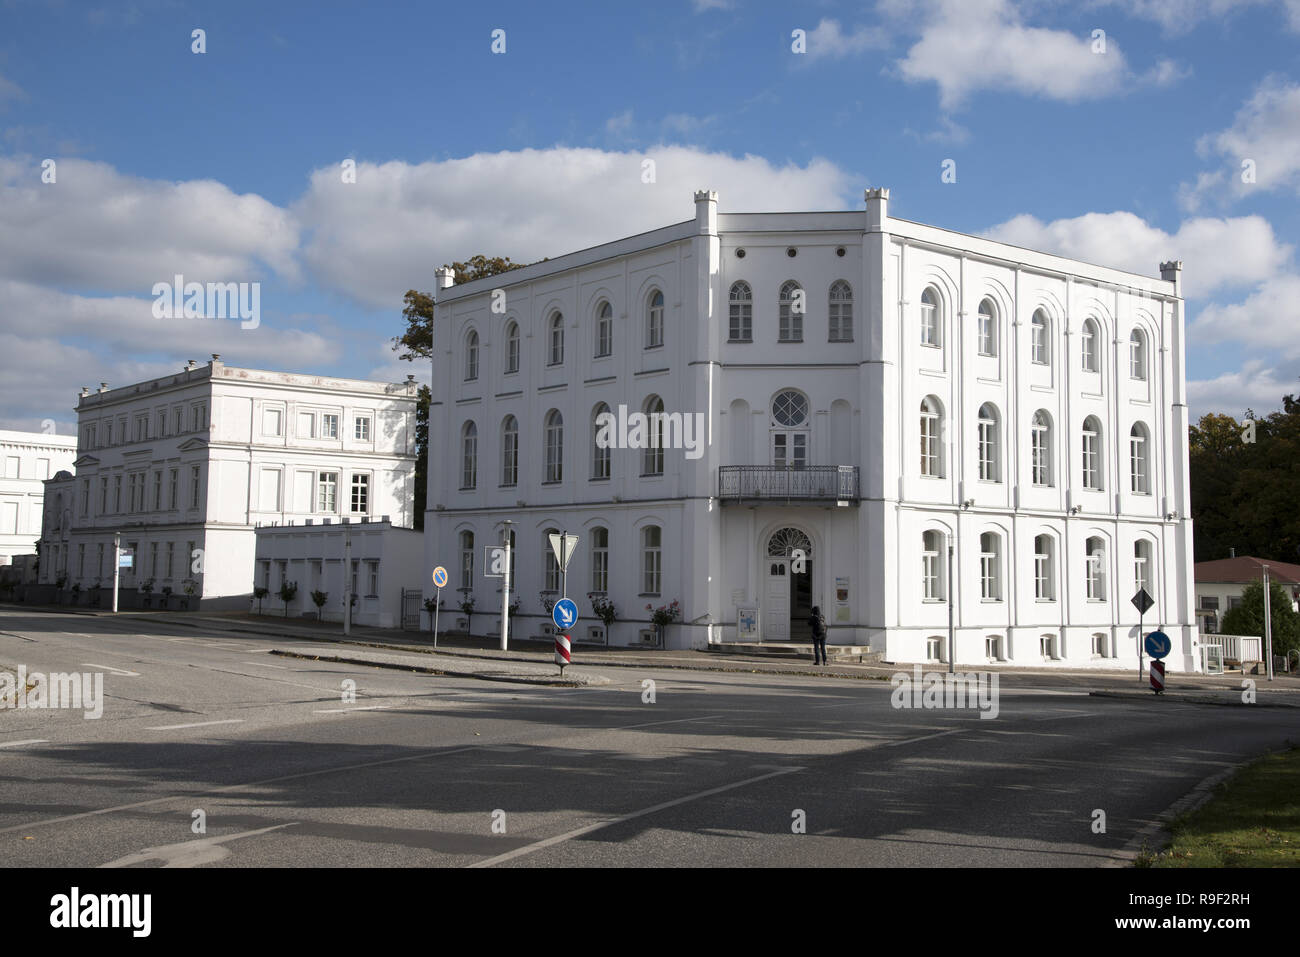 Built from 1810 the town Putbus on Rügen island in northeastern Germany is an impressive example of classicistic style buildings here at the circus. Stock Photo